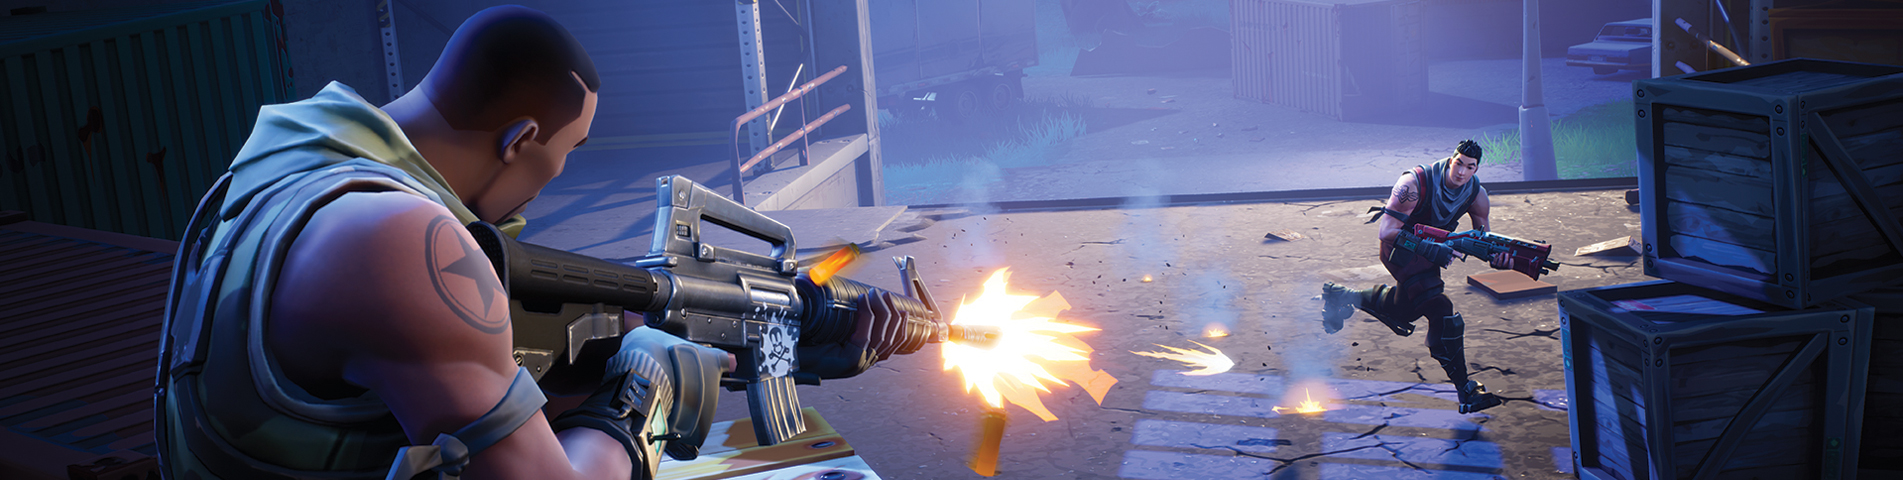 how to get fortnite not to lag on mac